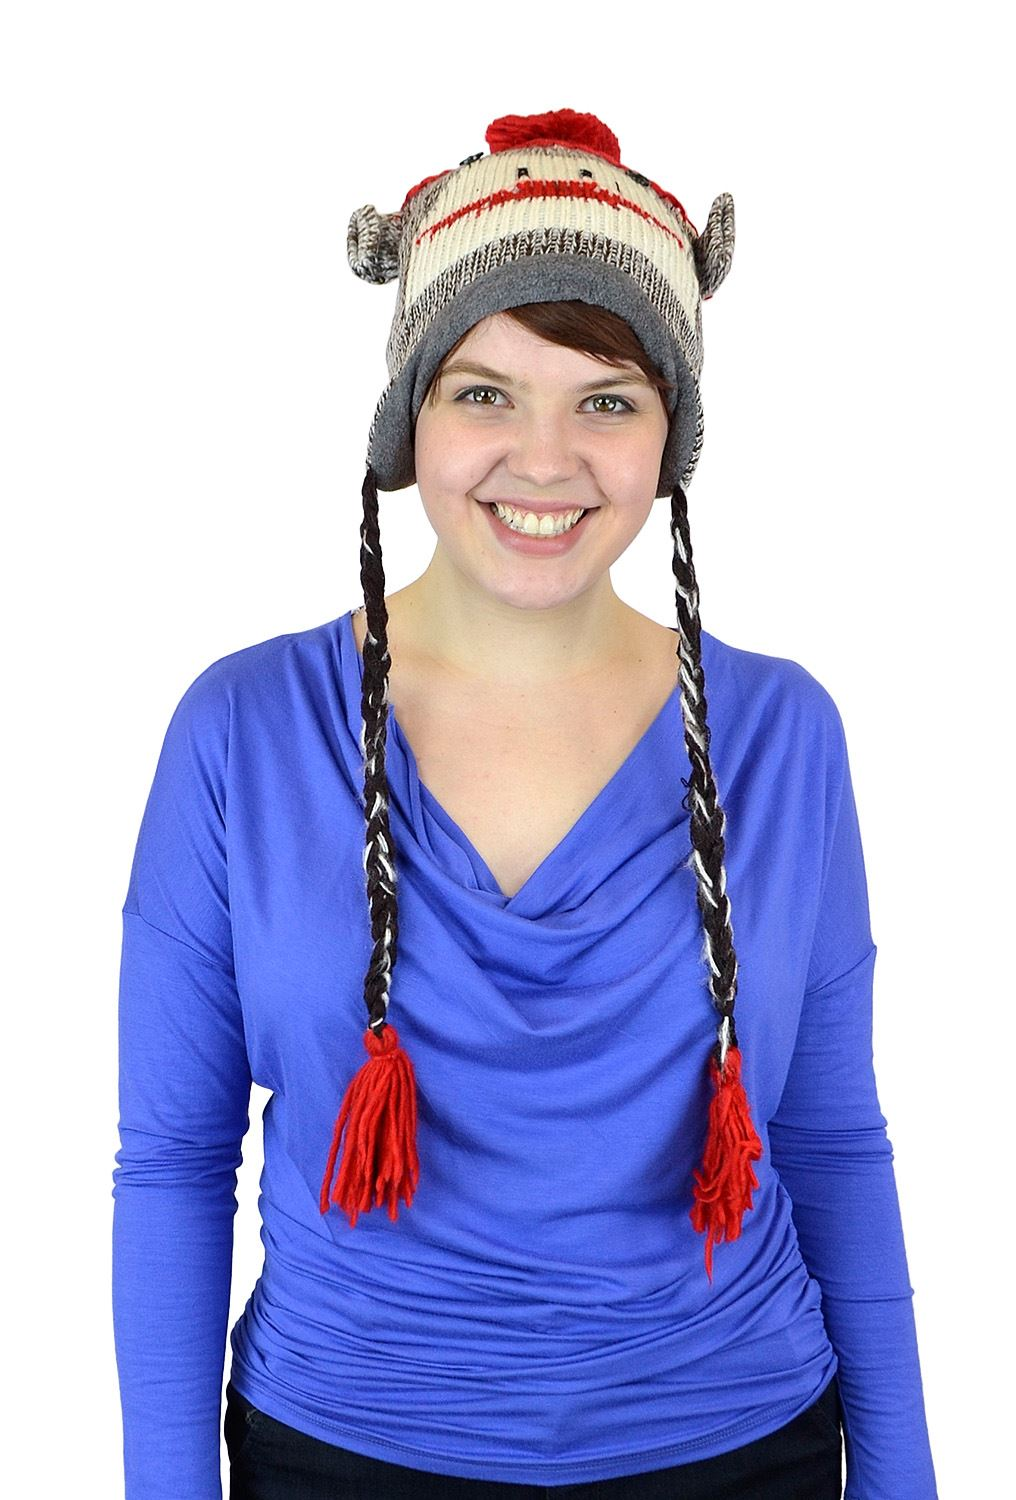 Belle Donne Unisex Winter Knit Monkey Animal Hats with Pom Pom - Brown